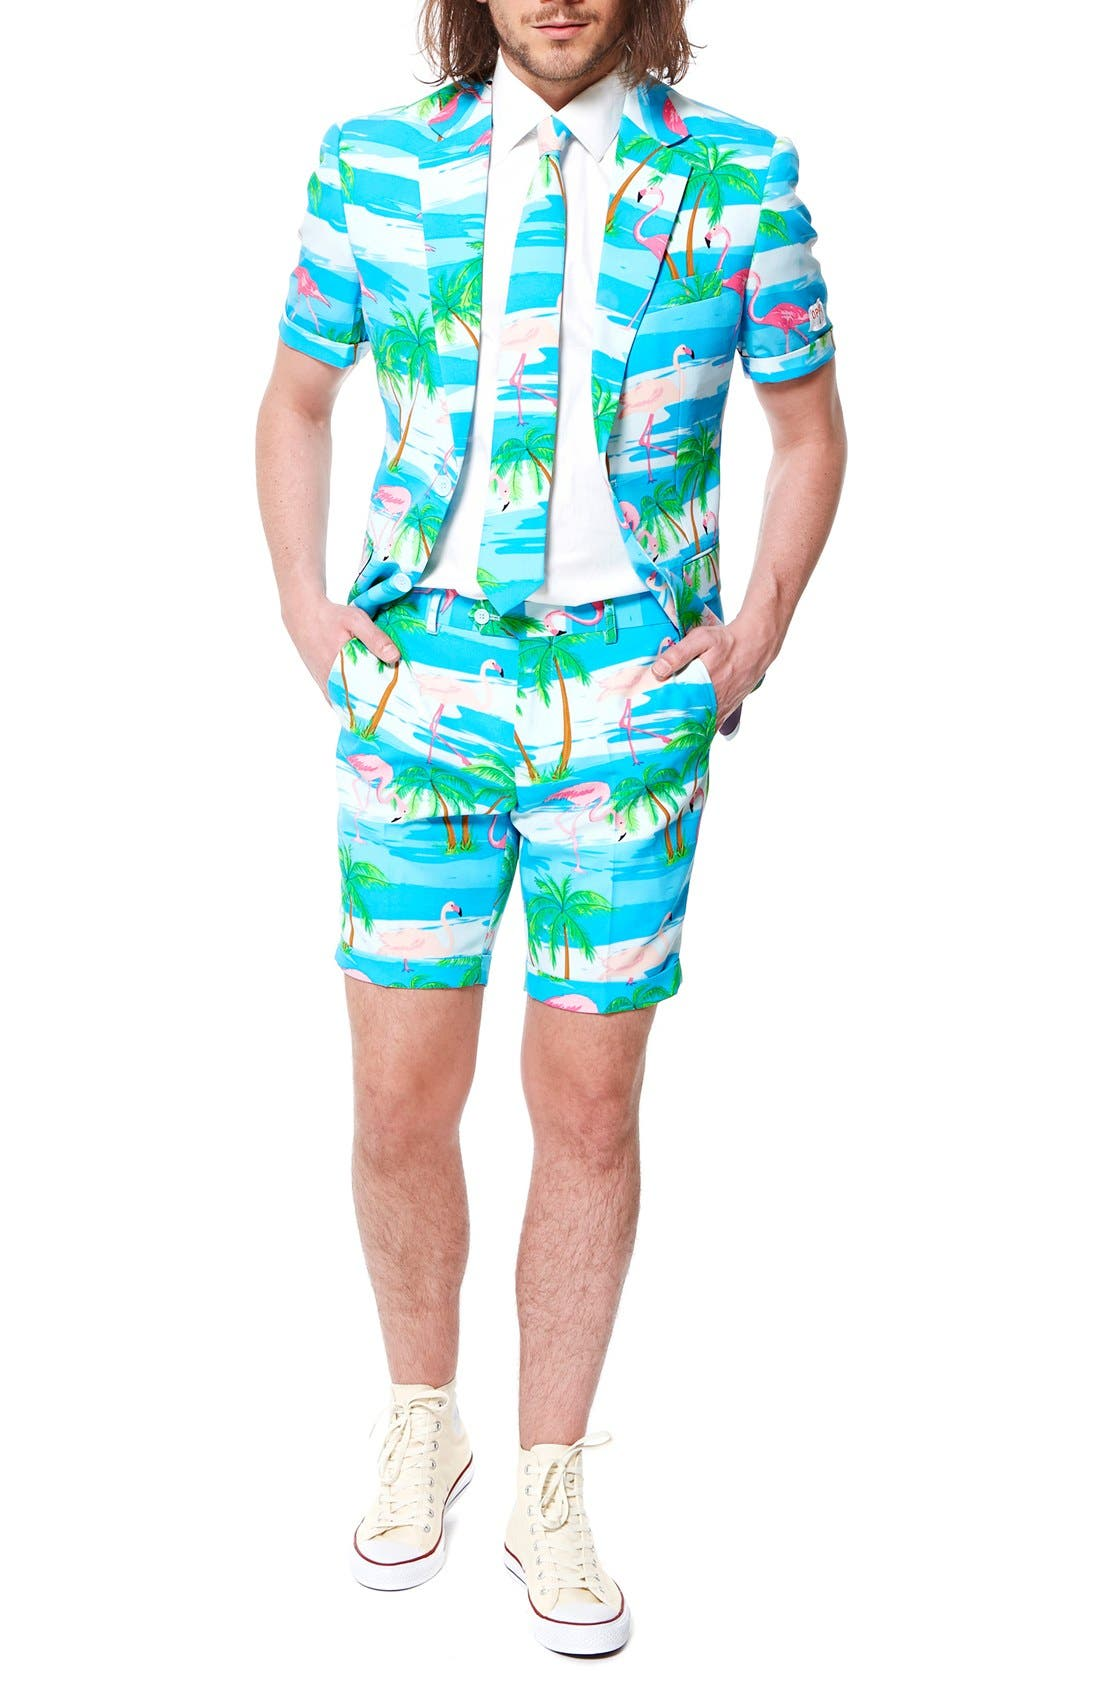 Main Image - OppoSuits 'Flaminguy - Summer' Trim Fit Two-Piece Short Suit with Tie